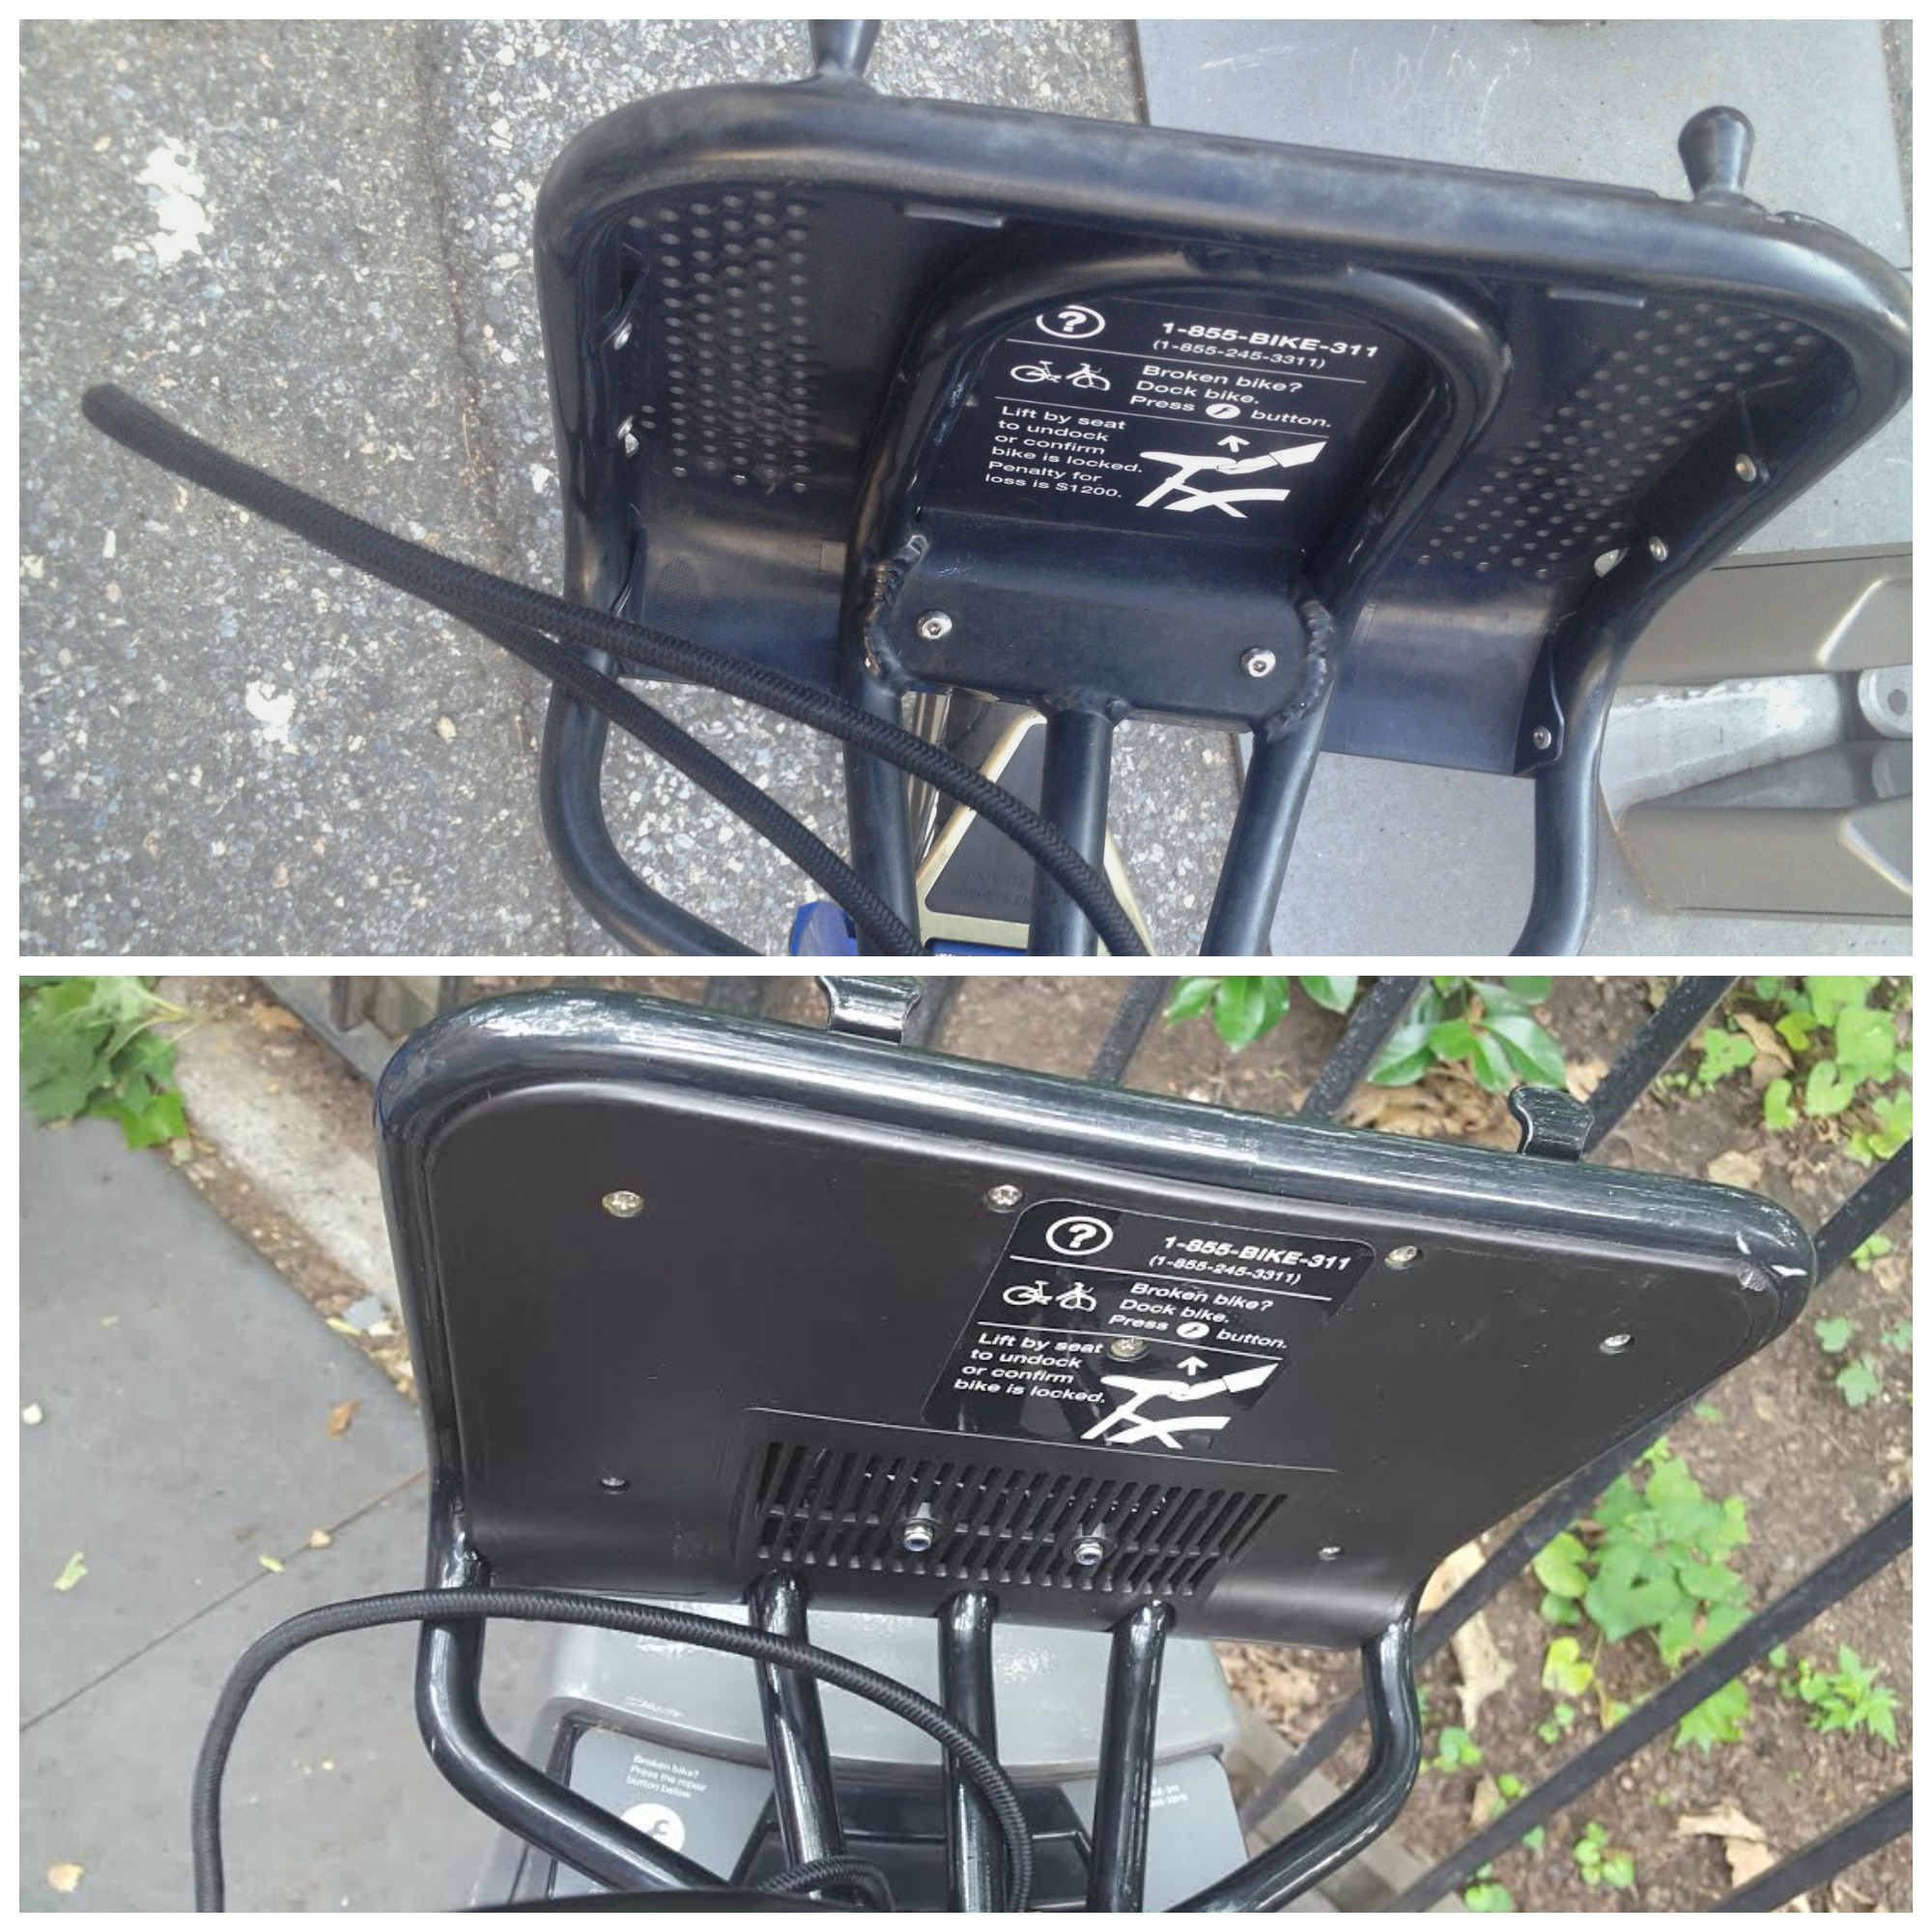 CitiBike new vs old basket